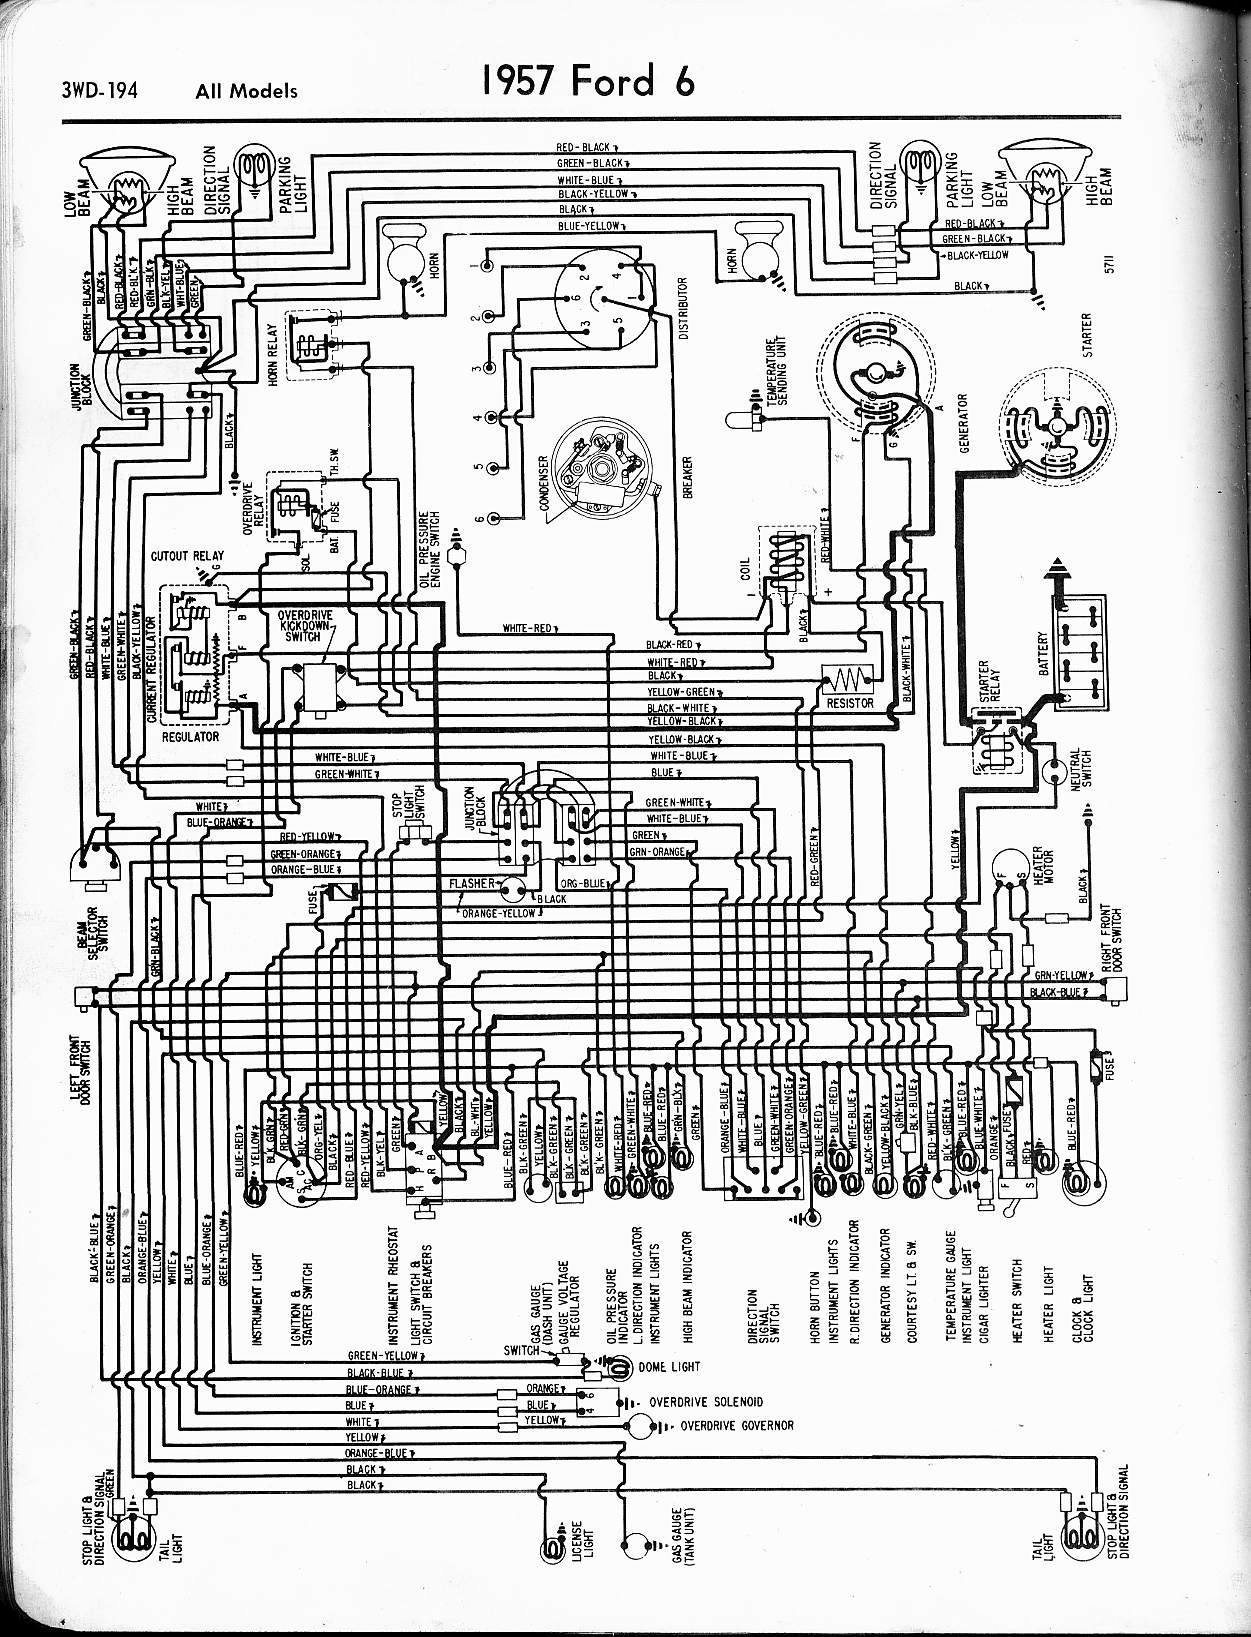 Ford Diagrams on circuit breaker for air conditioner, compressor for air conditioner, frame for air conditioner, battery for air conditioner, schematic for air conditioner, hard start kit for air conditioner, fuse for air conditioner, transfer switch for air conditioner, repair for air conditioner, remote control for air conditioner, water pump for air conditioner, accessories for air conditioner, coil for air conditioner, sensor for air conditioner, parts for air conditioner, plug for air conditioner, control panel for air conditioner, connector for air conditioner, cable for air conditioner, wiring diagram motor,